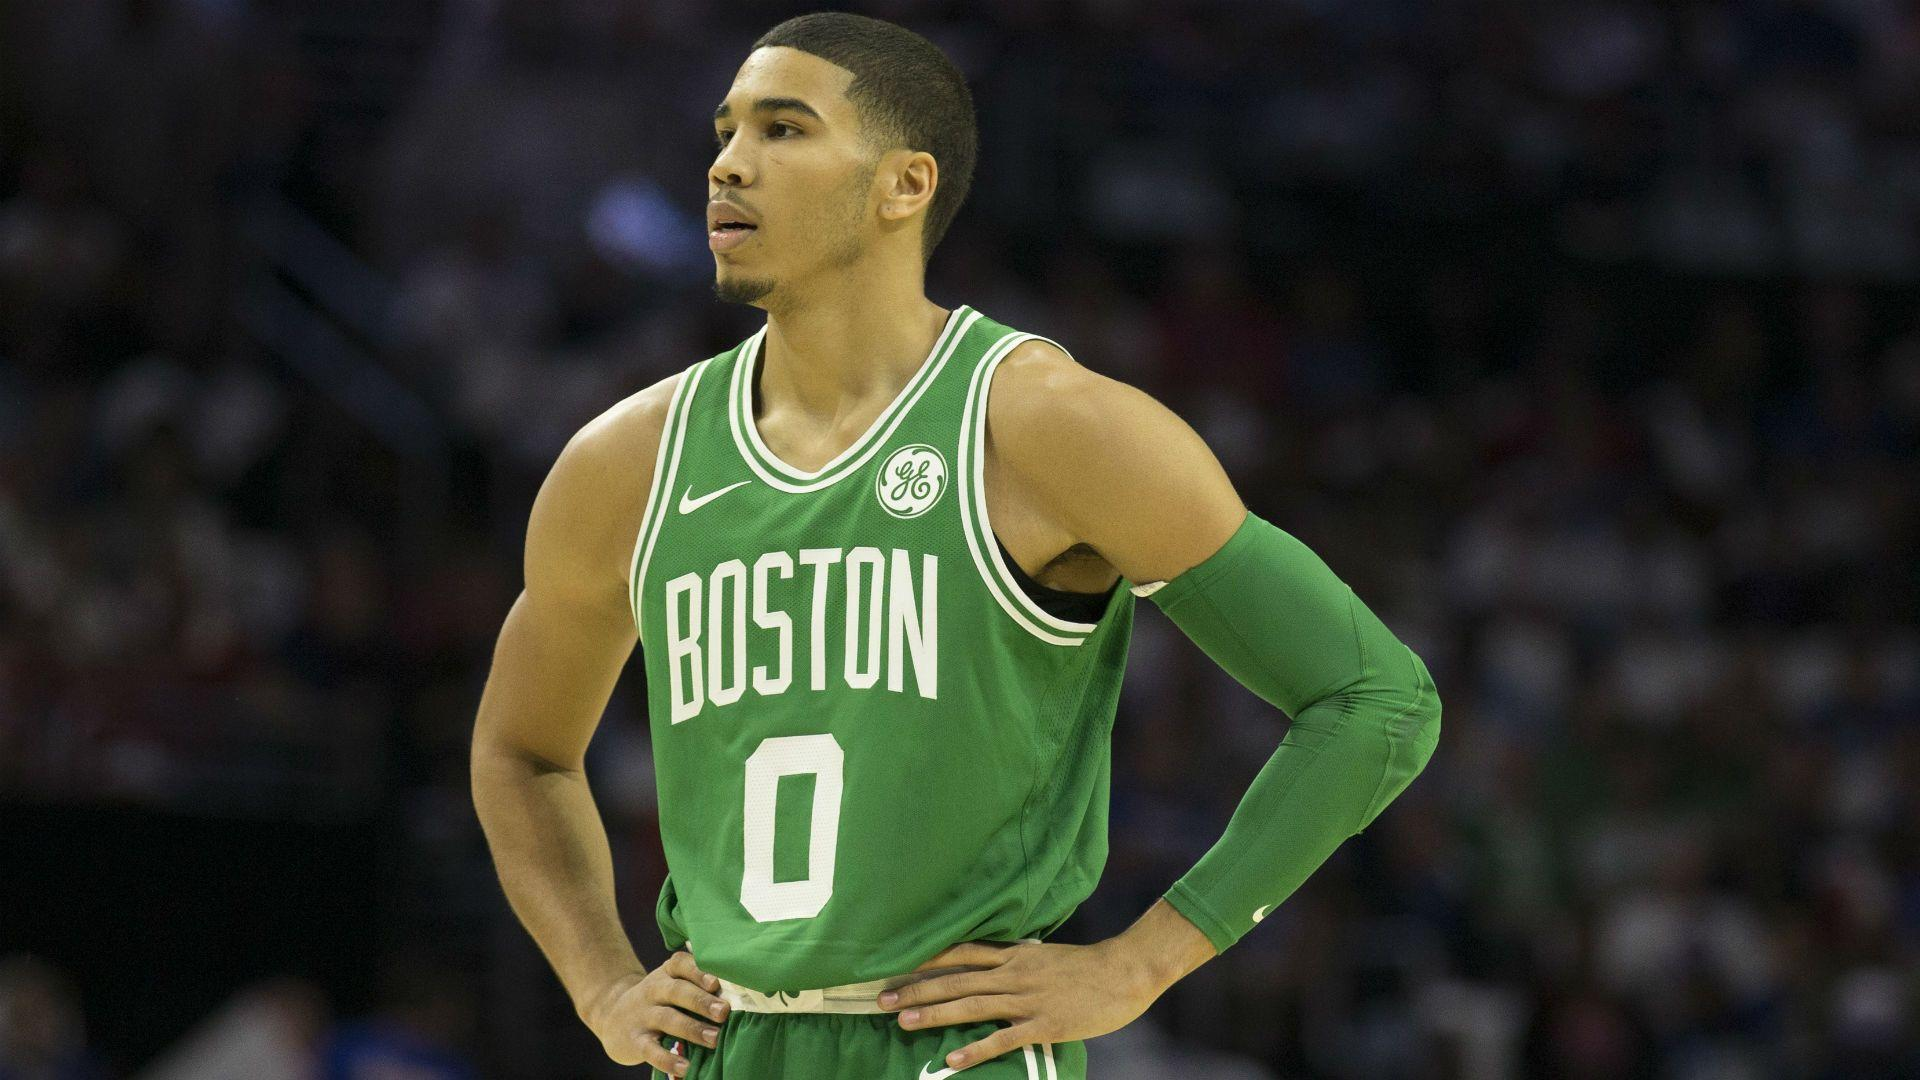 Jayson Tatum injury update: Celtics rookie in walking boot with